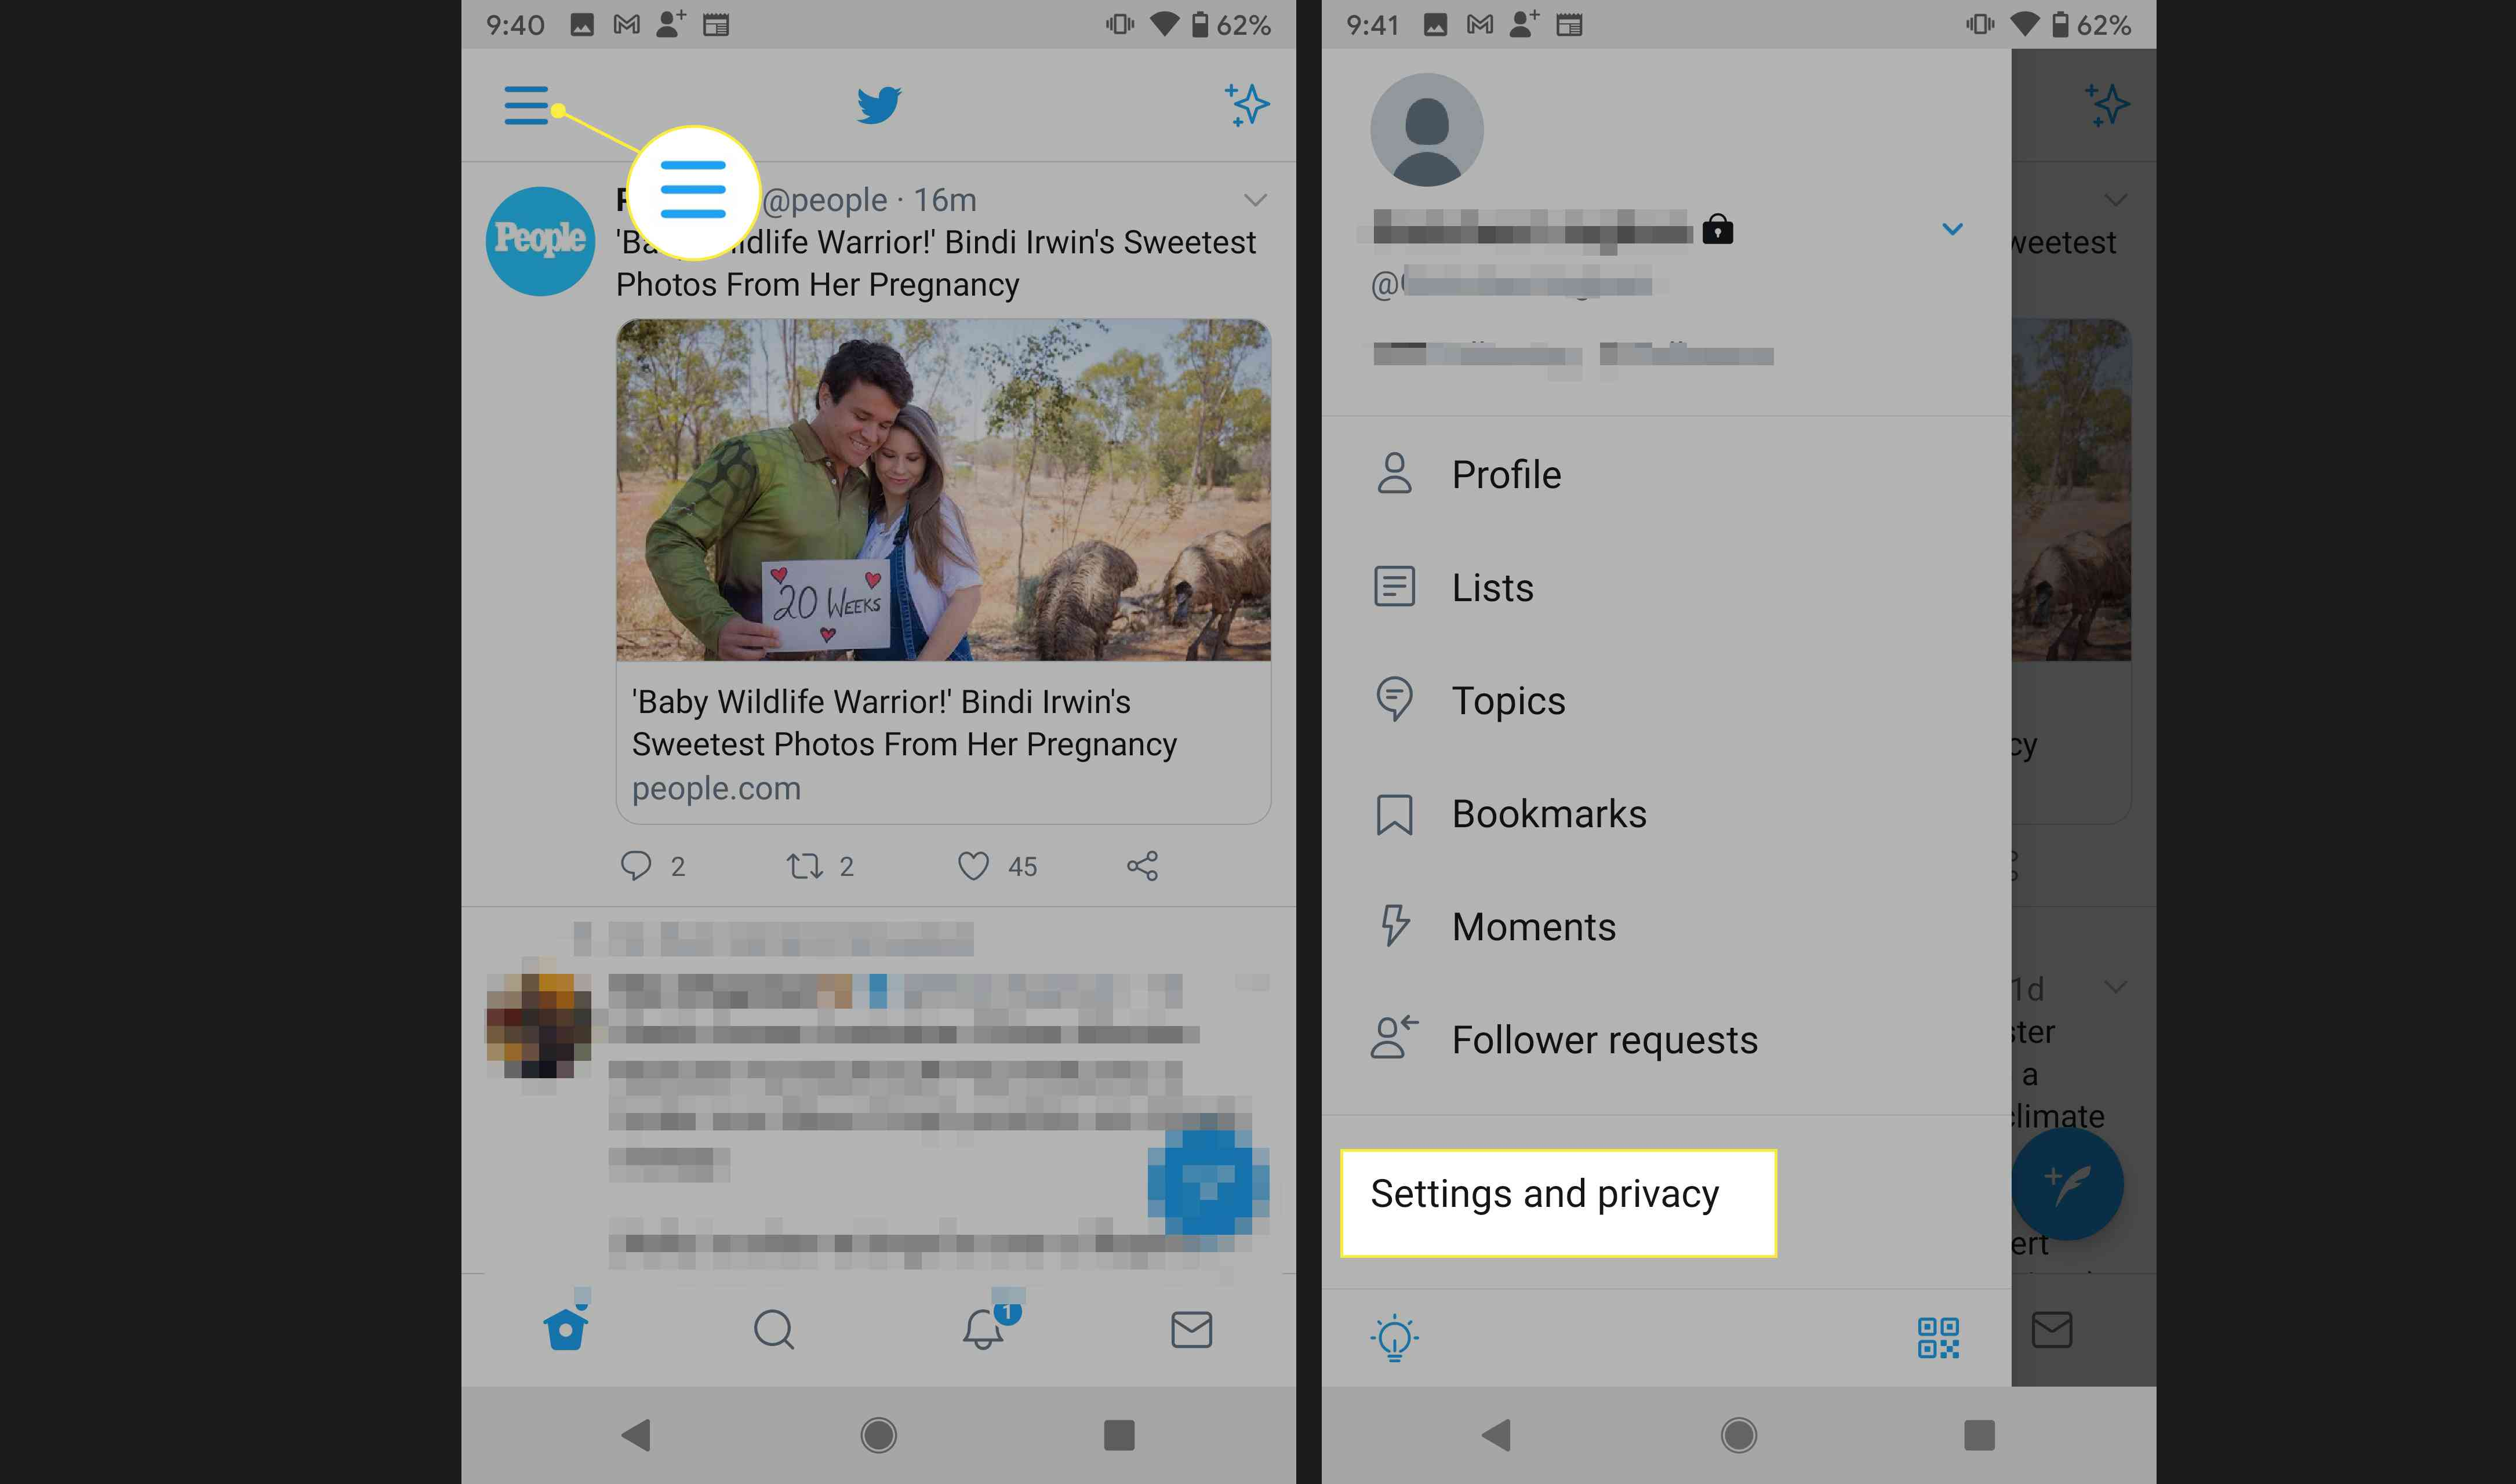 Twitter Android app with Account and Settings and Privacy highlighted